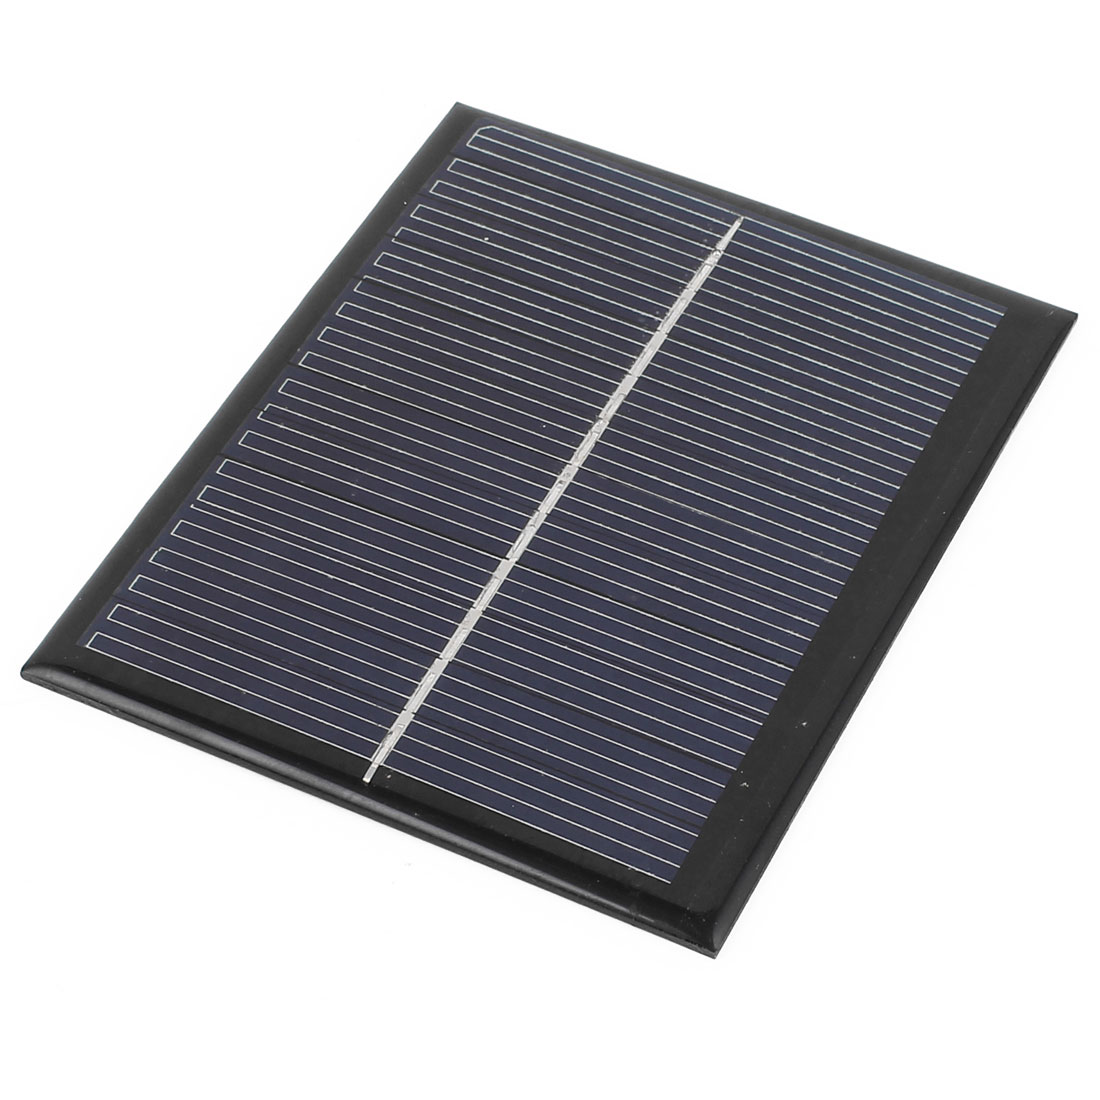 DC 6V 1.5W Rectangle Energy Saving Solar Cell Panel Module 112x91mm for Charger